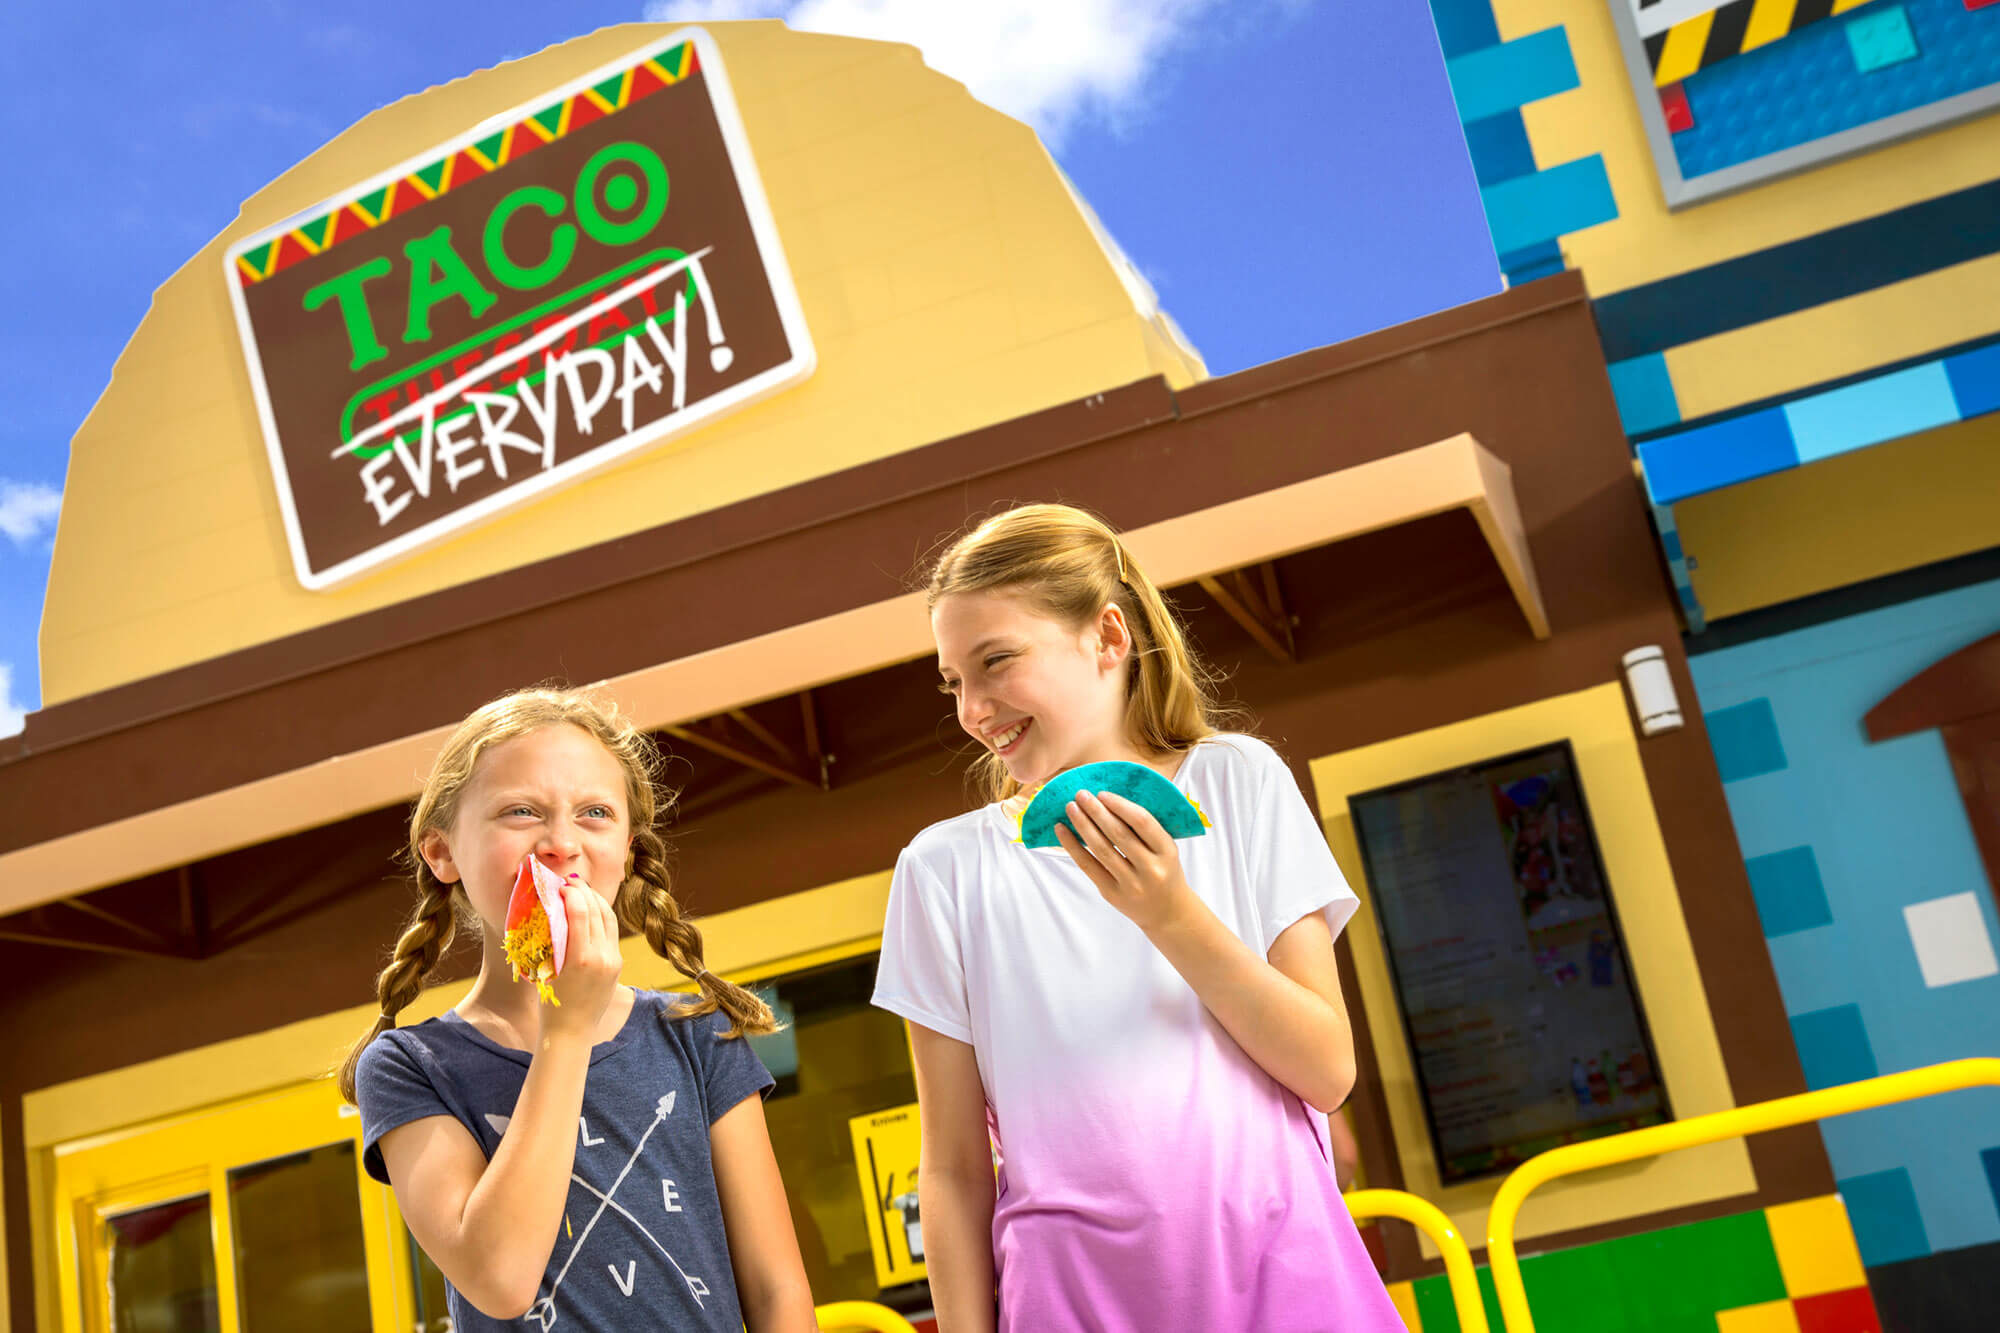 2 girls outside Taco Everyday restaurant in LEGO Movie World at LEGOLAND Florida Resort in Winter Haven